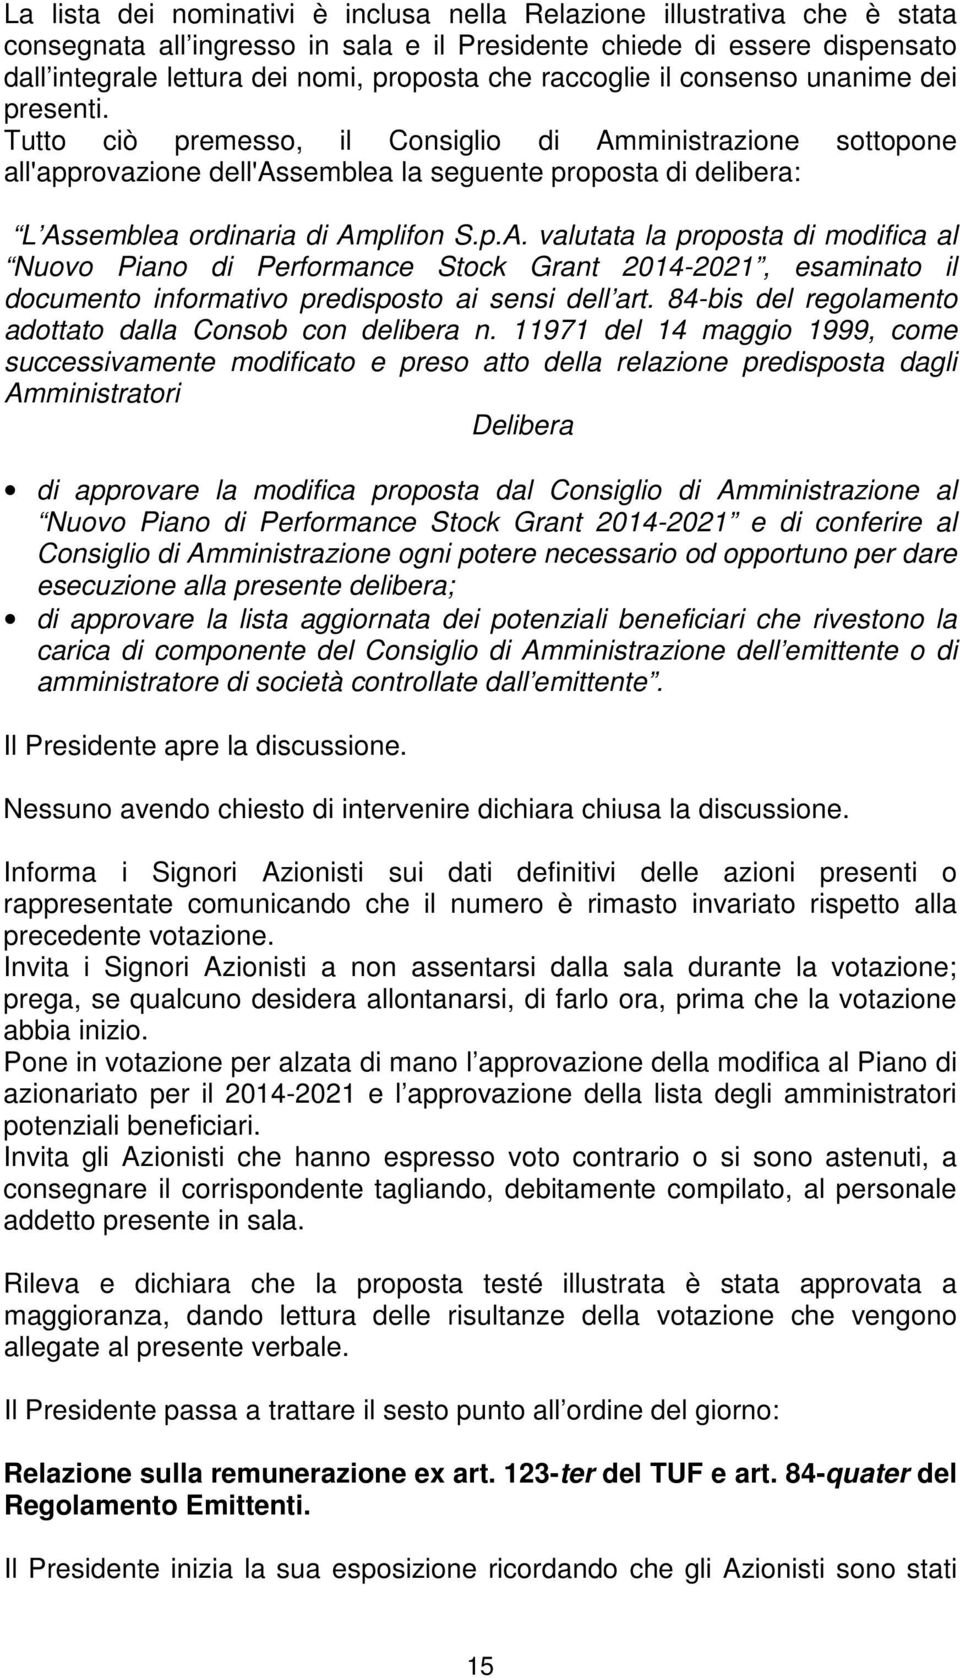 Tutto ciò premesso, il Consiglio di Amministrazione sottopone all'approvazione dell'assemblea la seguente proposta di delibera: L Assemblea ordinaria di Amplifon S.p.A. valutata la proposta di modifica al Nuovo Piano di Performance Stock Grant 2014-2021, esaminato il documento informativo predisposto ai sensi dell art.